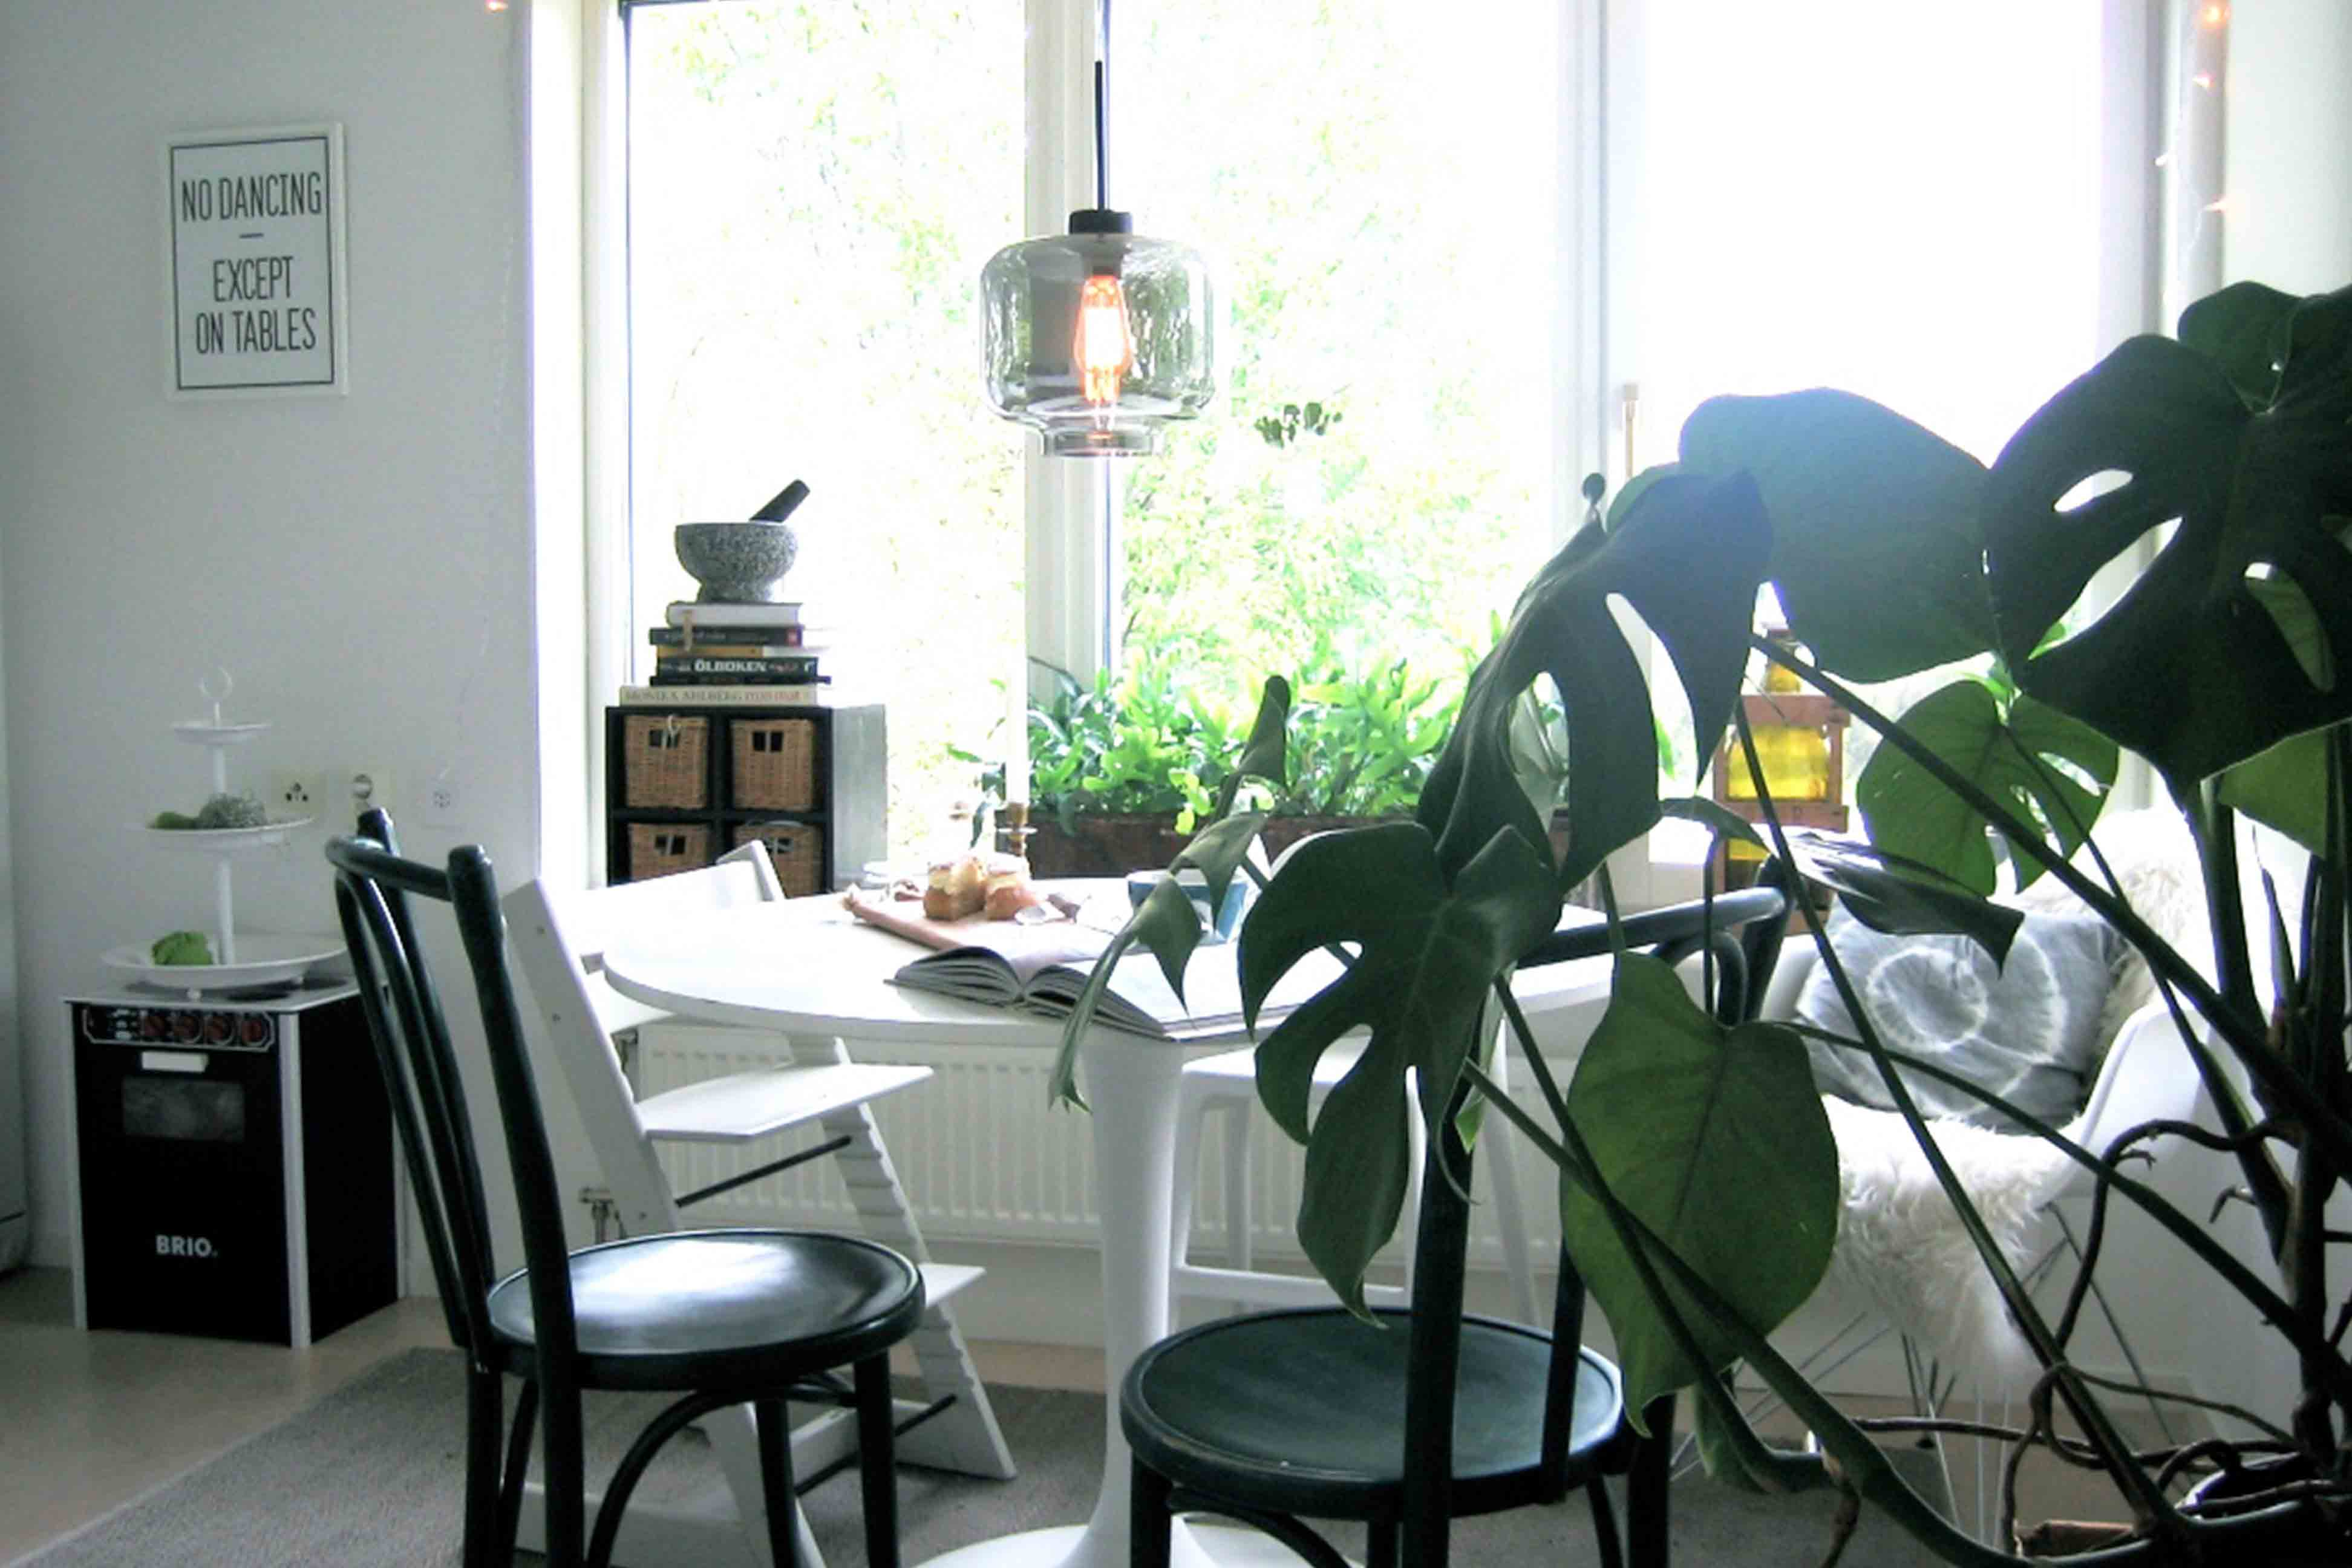 In Sweden, a Family's First Home, Design*Sponge